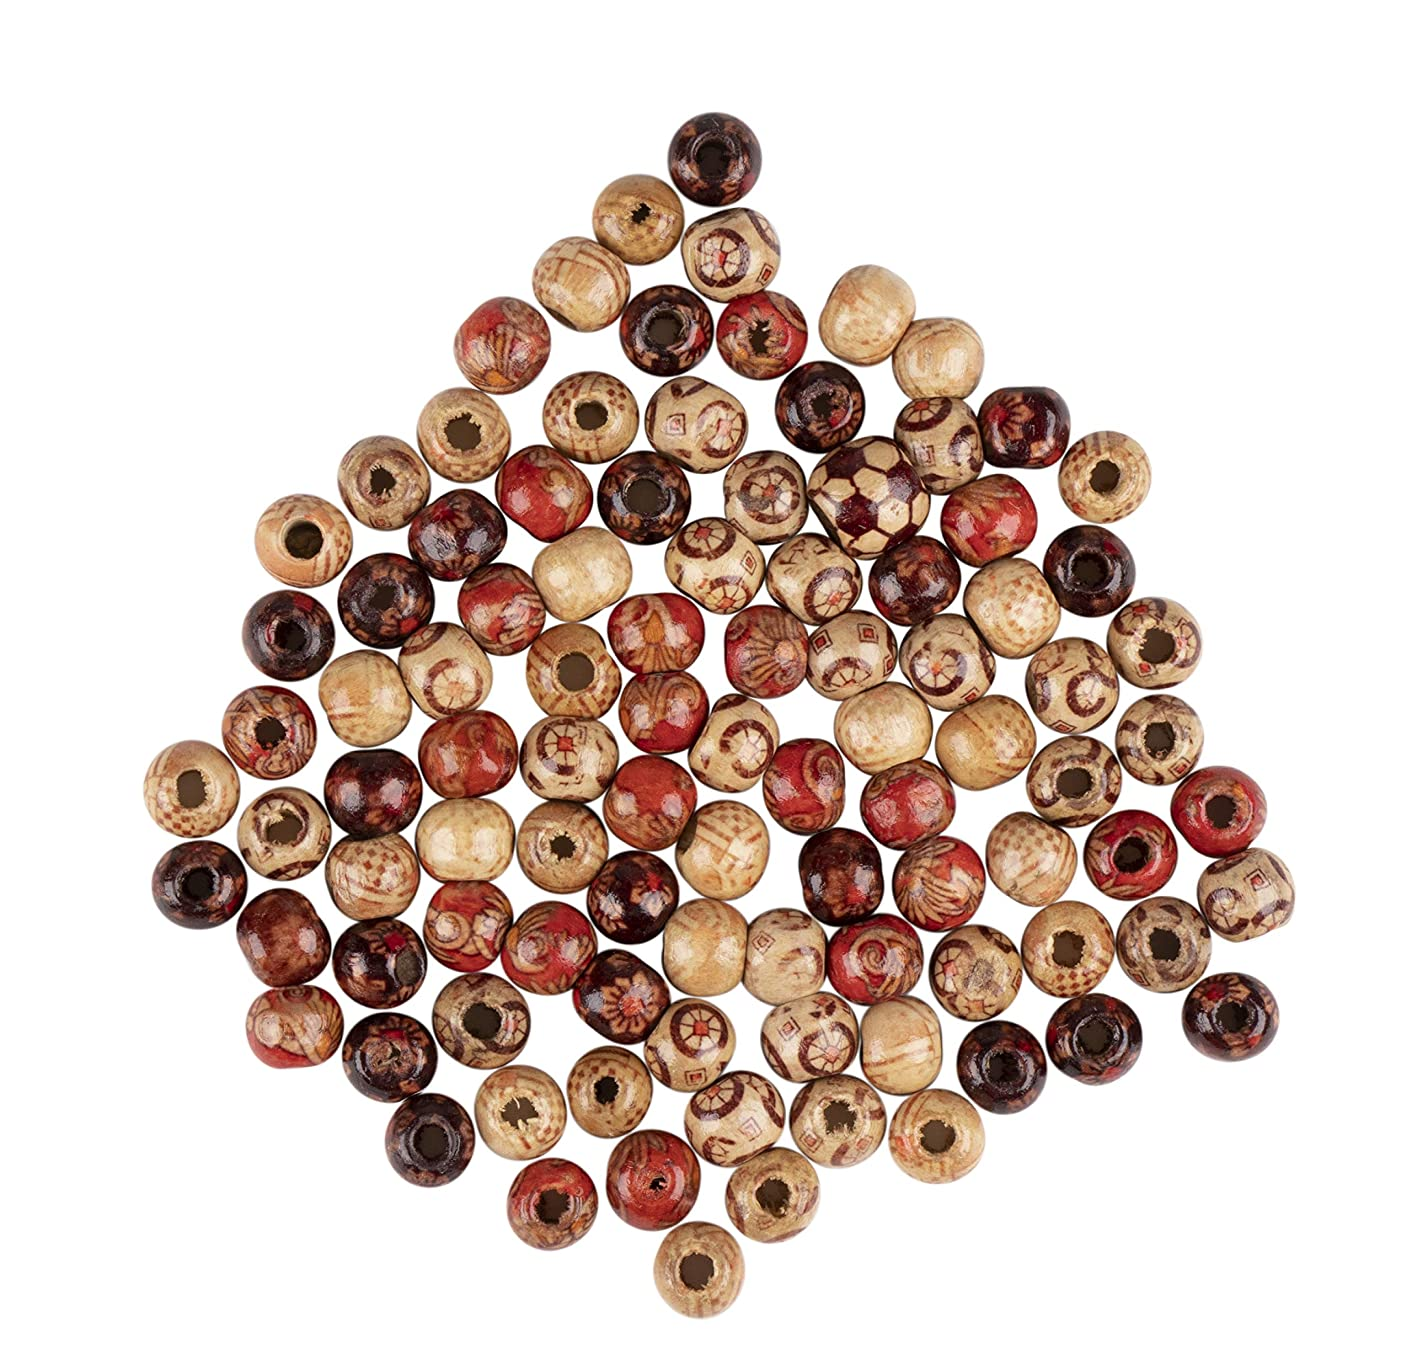 Wood Beads - 500-Pack Natural Painted Barrel Beads, Round Loose Beads, Perfect Accessories for Jewelry Making and Art Craft Project, Macrame Rosary Bracelet DIY, Assorted Colors, 9 x 10 mm